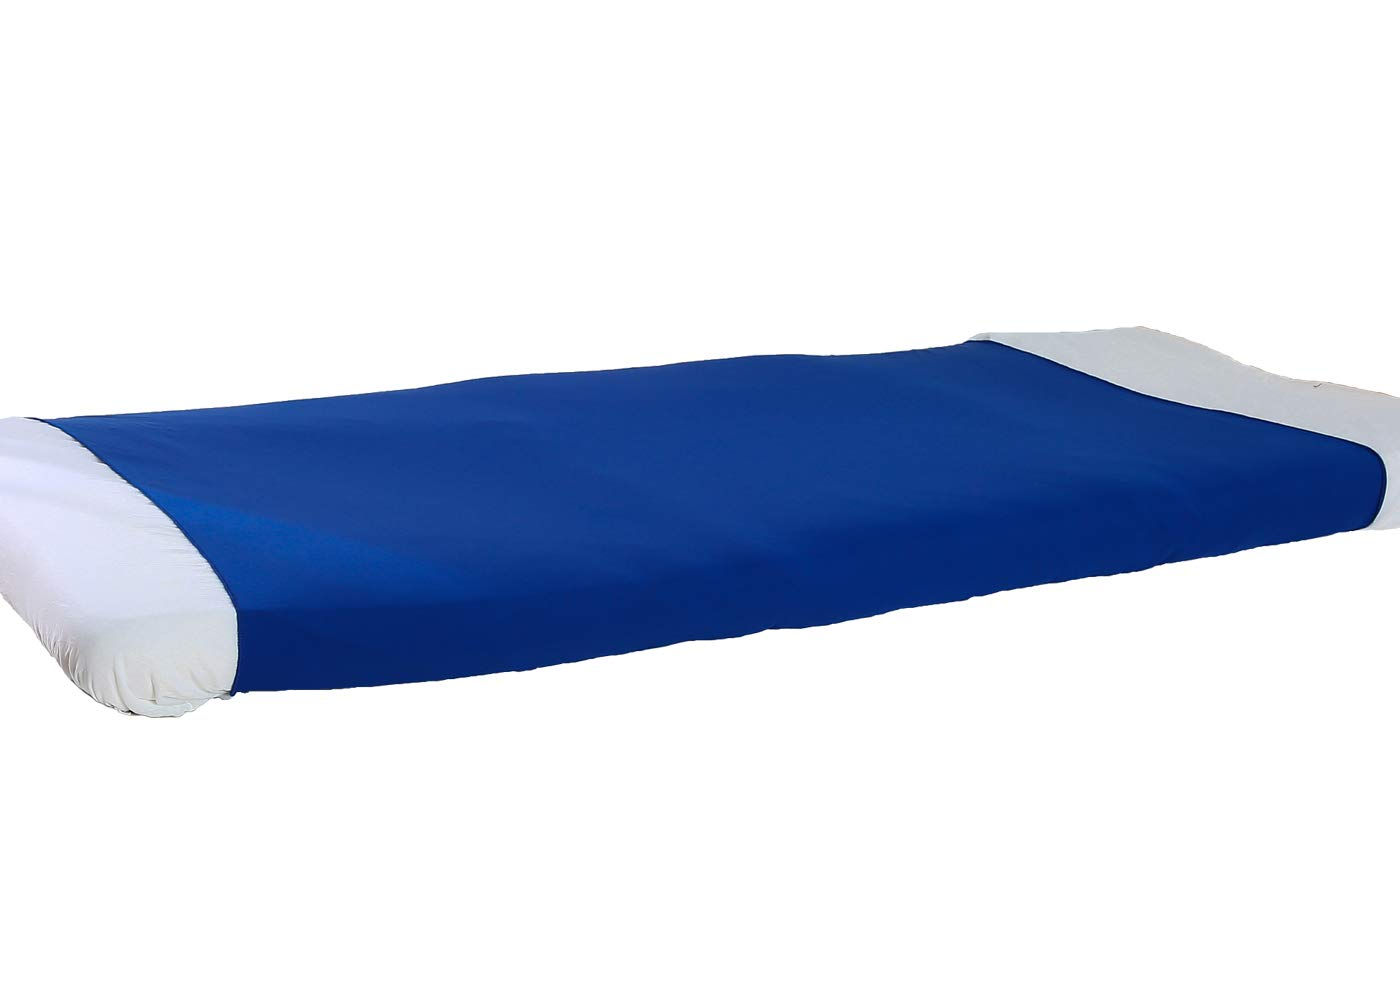 BUZIO Pouch Sensory Bed Sheet for Kids - Compression Alternative to Heavy Blanket, Breathable, Stretchy, Adjustable, Twin, Royal Blue by BUZIO